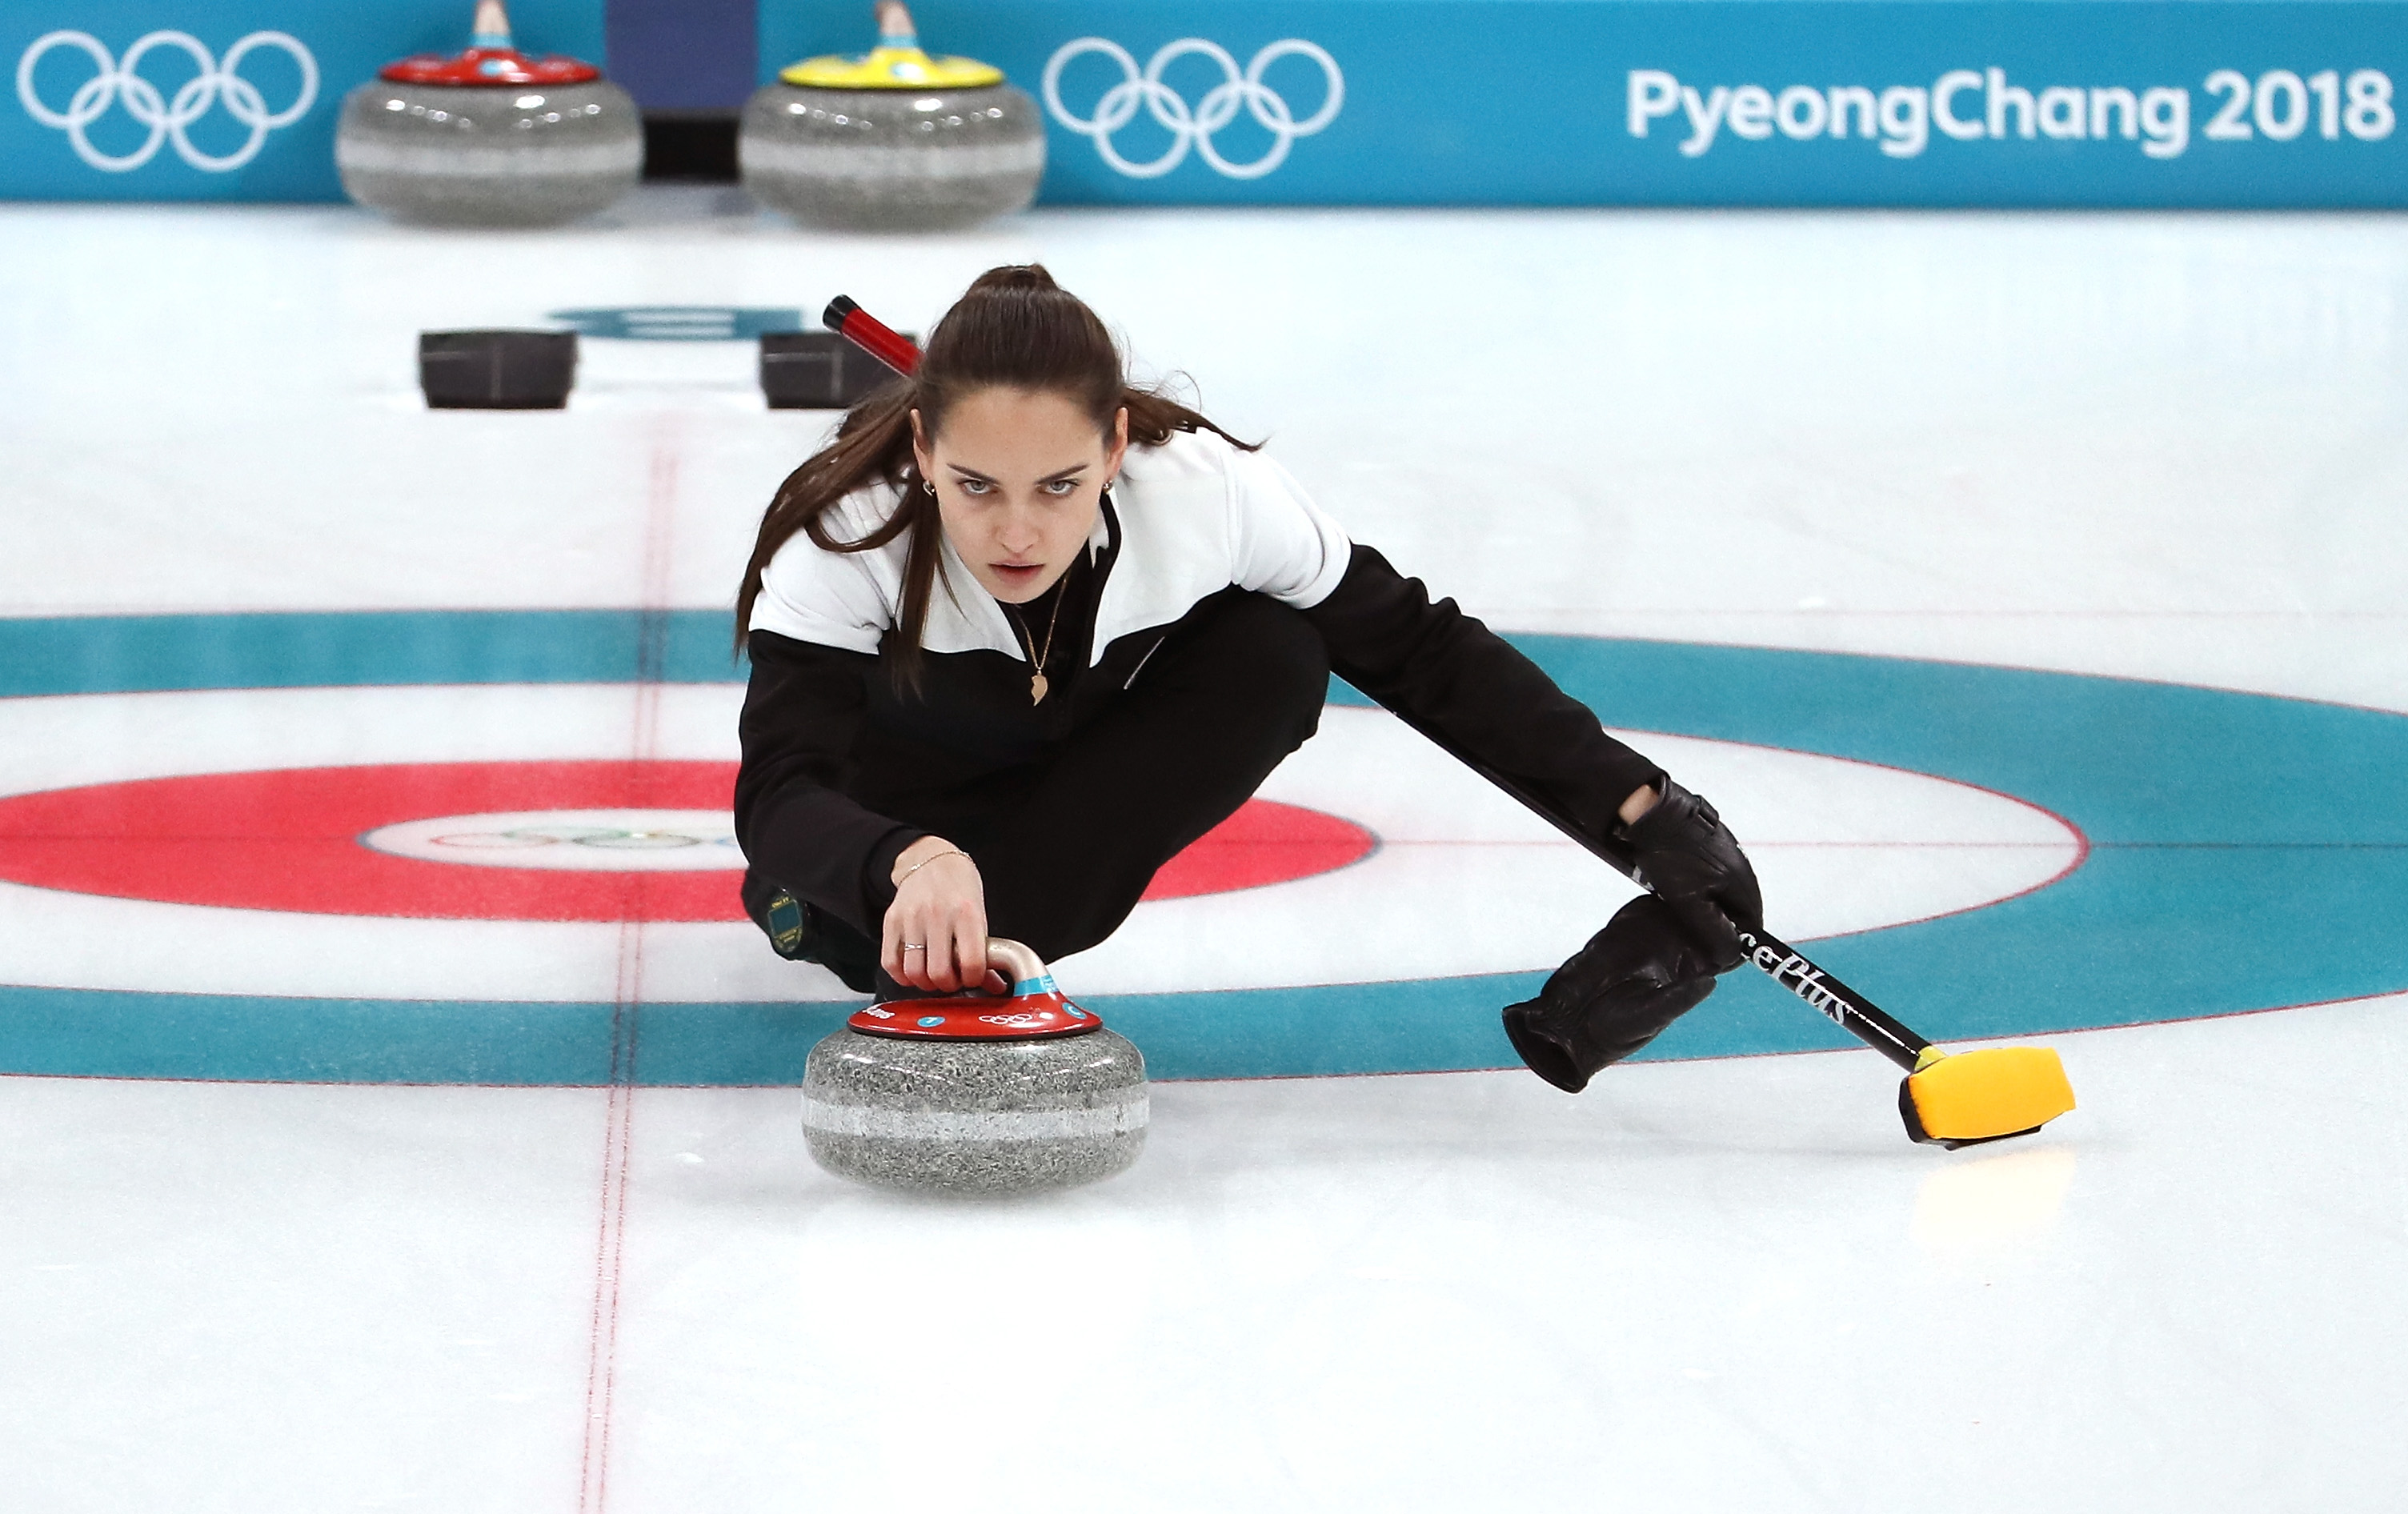 People are losing it over the Russian curler who fell — because she looks just like Angelina Jolie